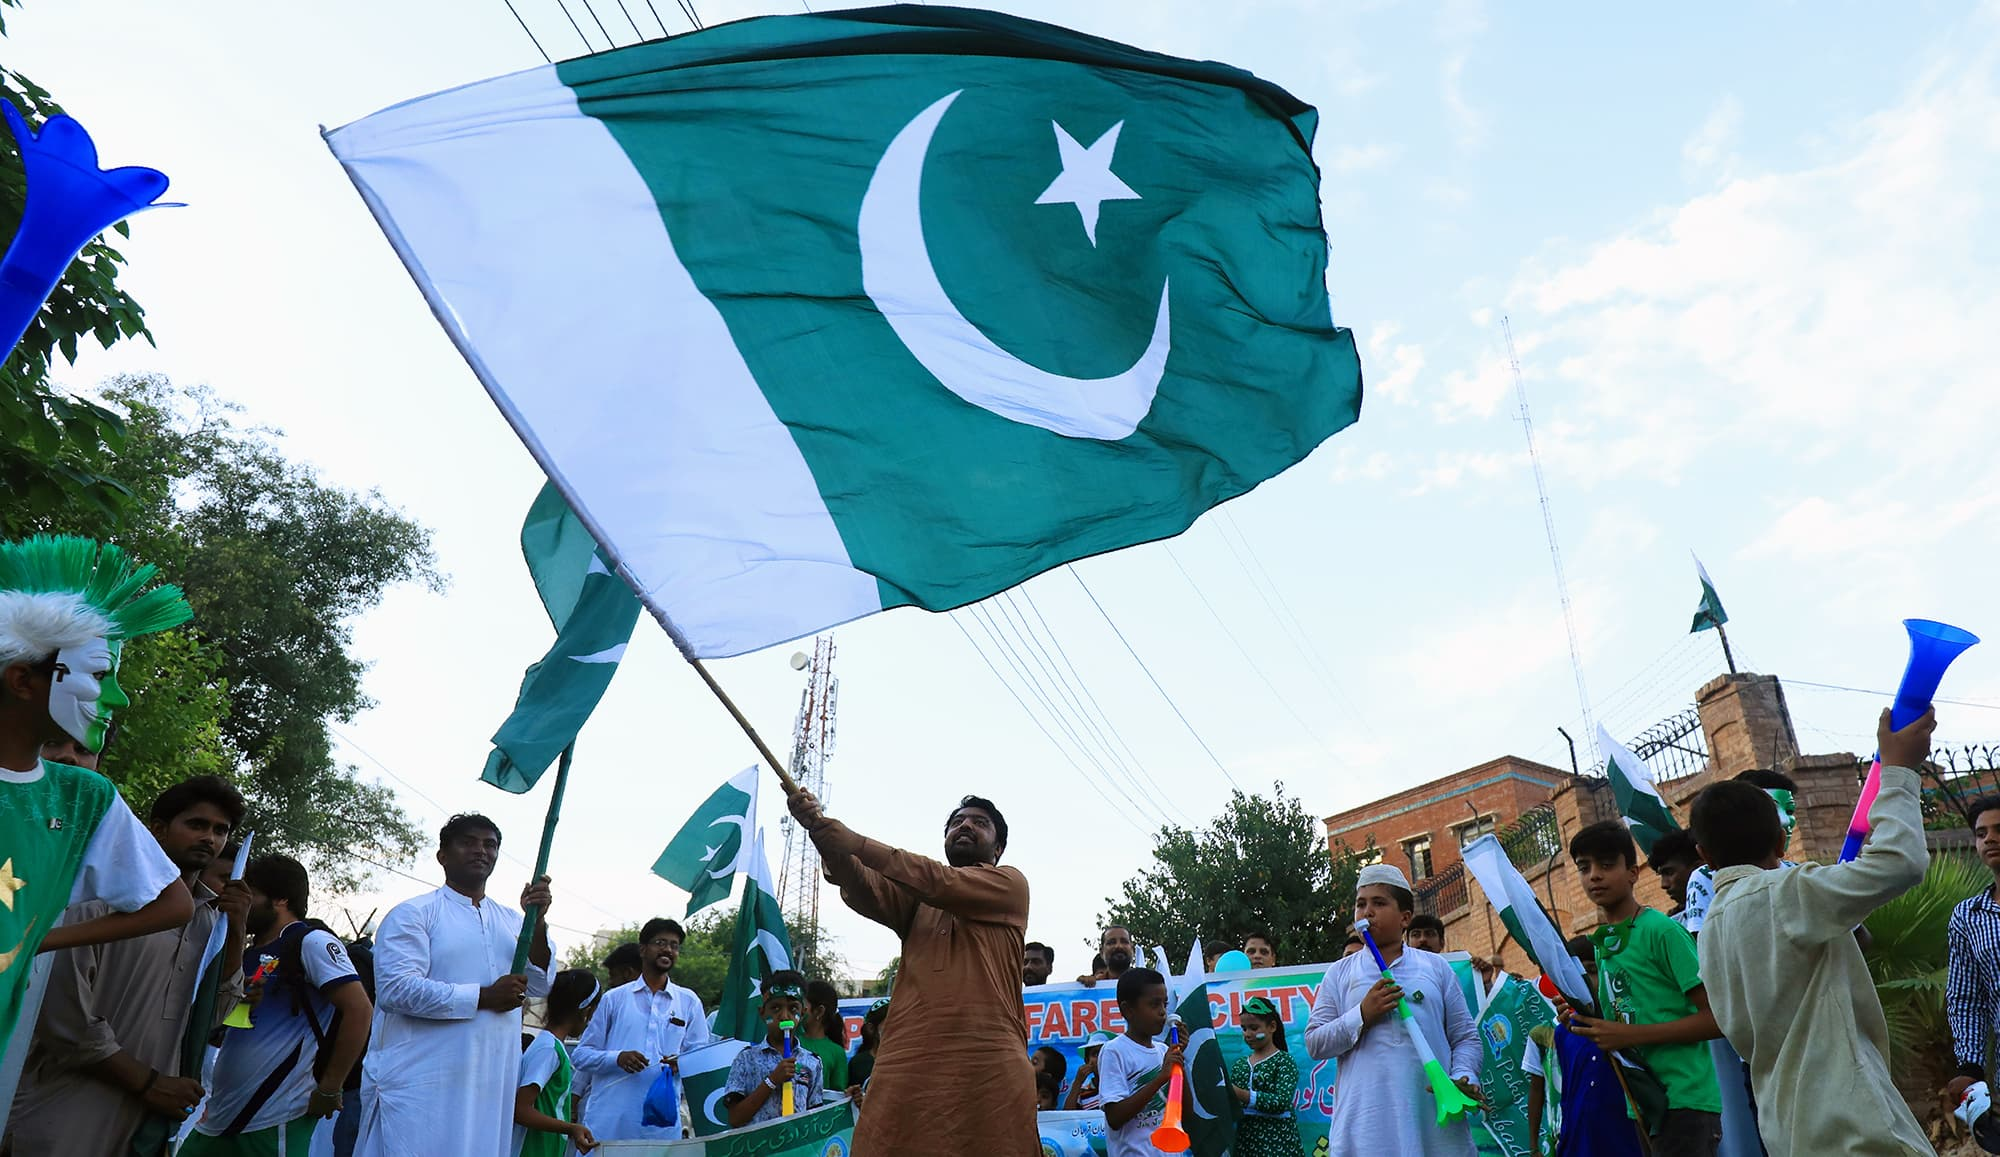 In pictures: Kashmir in focus as Pakistanis celebrate 72nd Independence Day